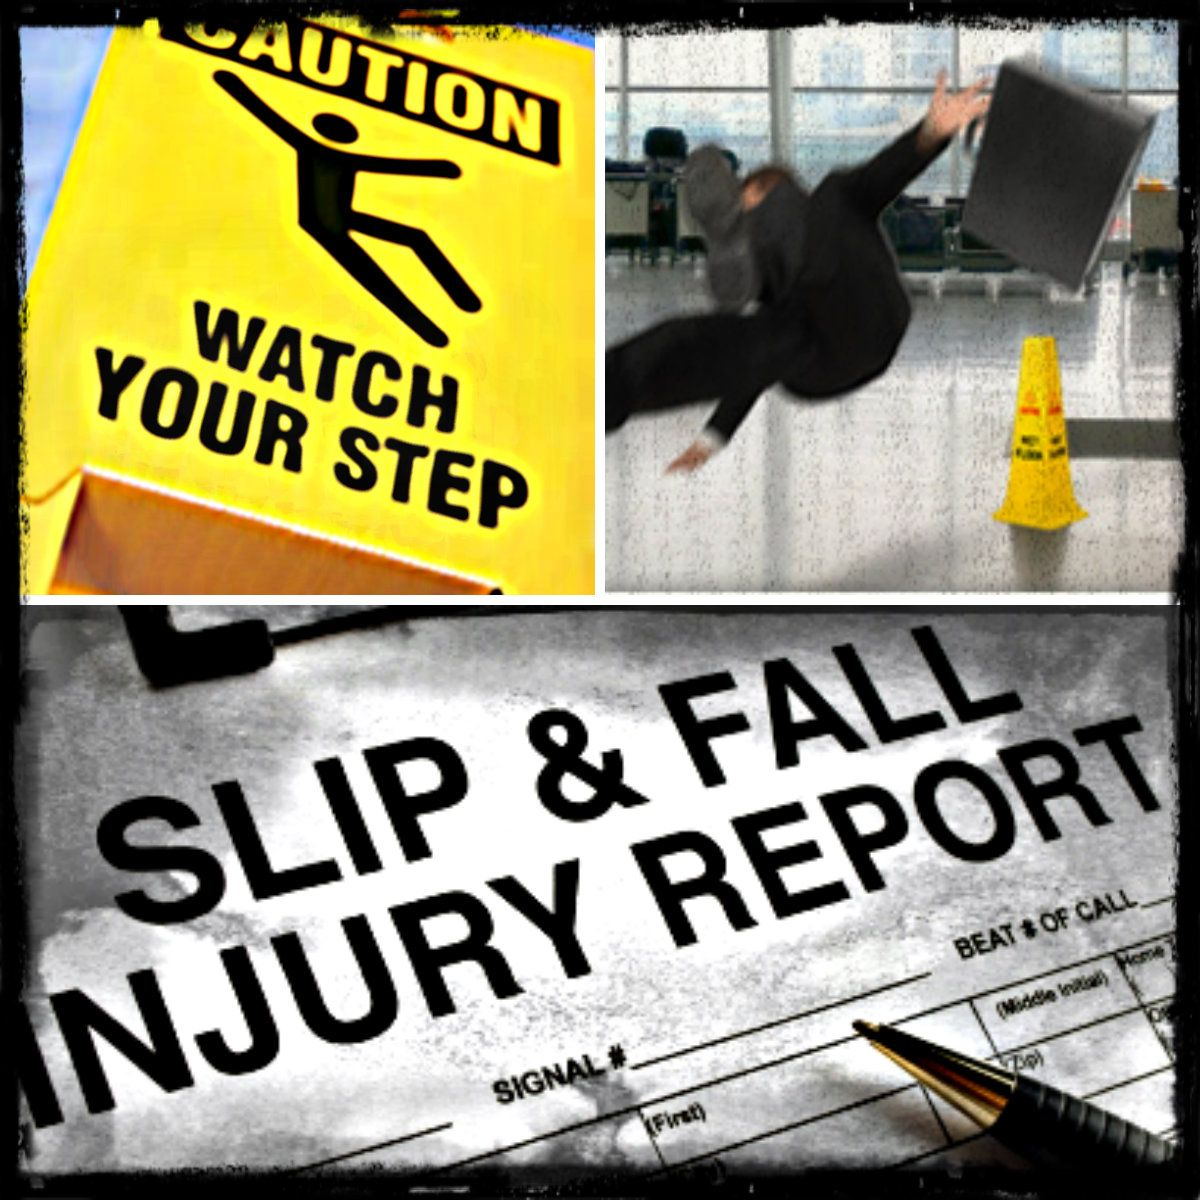 accidental injury insurance definition